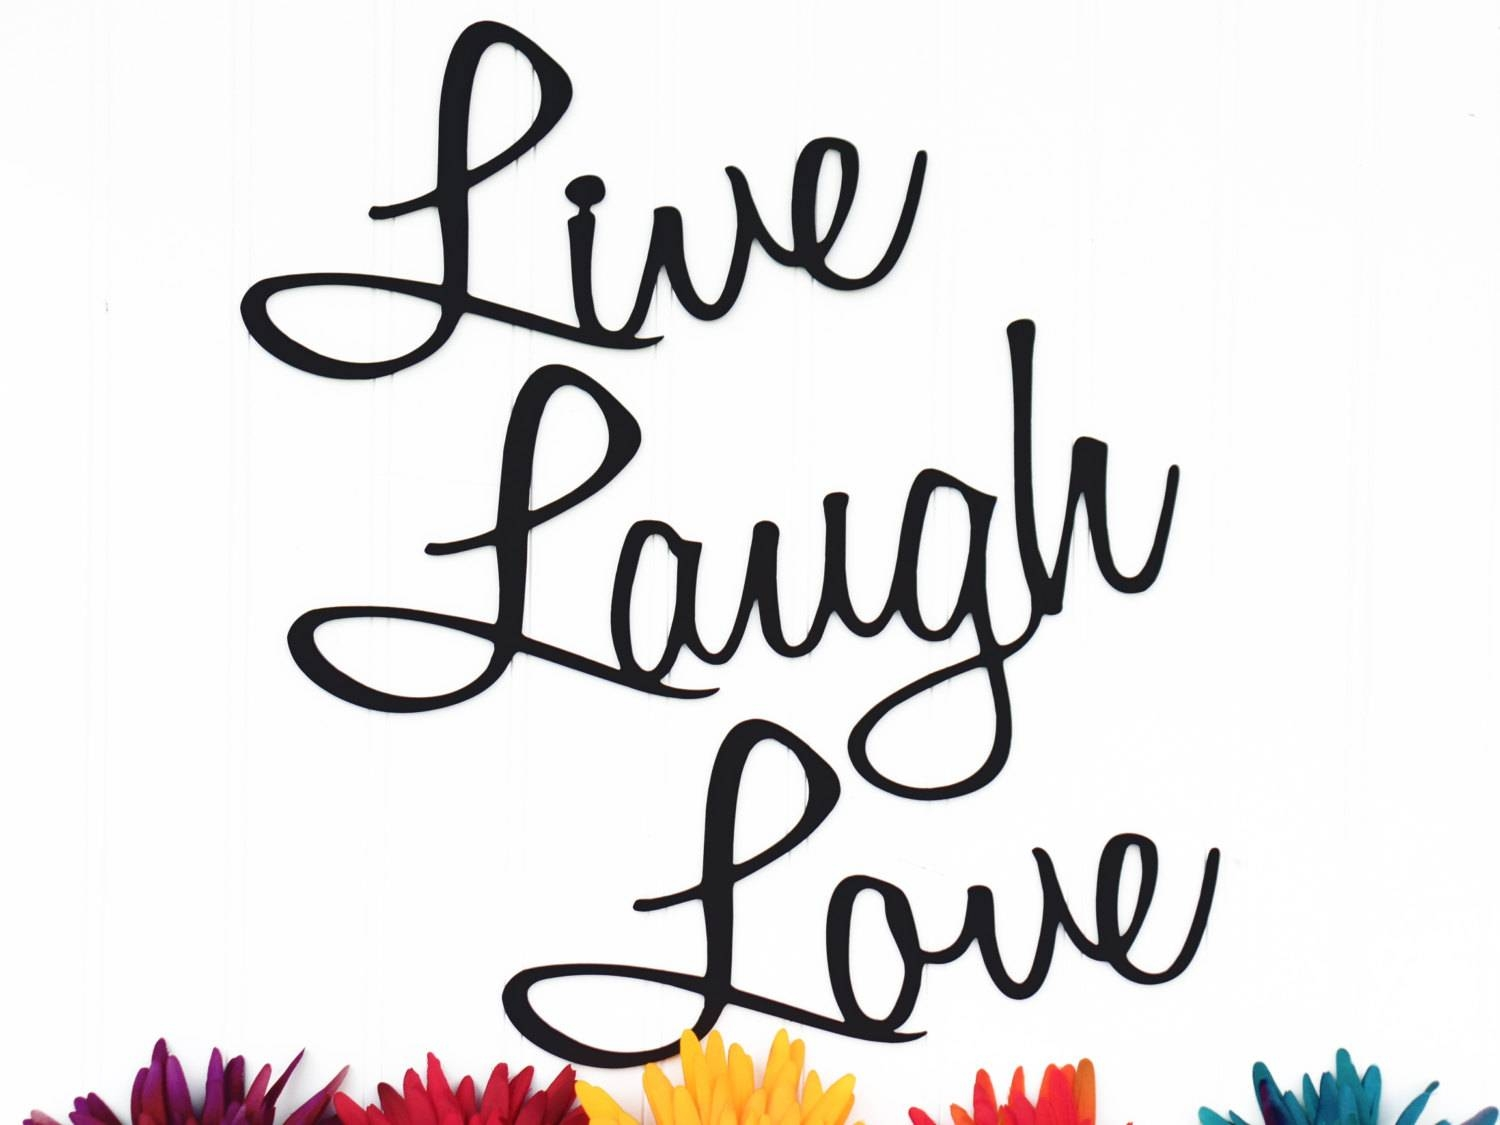 Live Laugh Love Wall Decor Patio Decor Lake House Decor In Current Live Laugh Love Wall Art Metal (View 15 of 25)